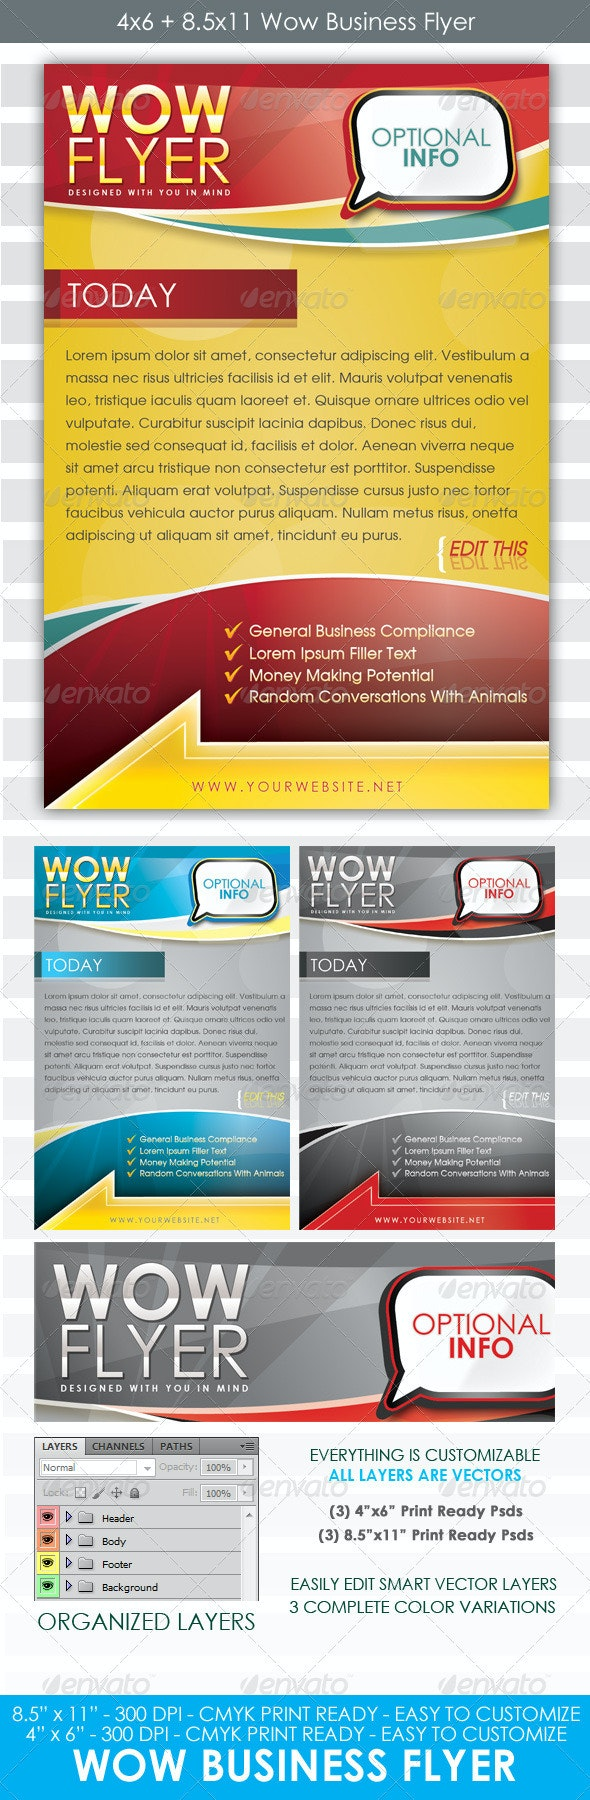 Wow Flyer 4x6 and 8.5x11 Business Template - Clubs & Parties Events